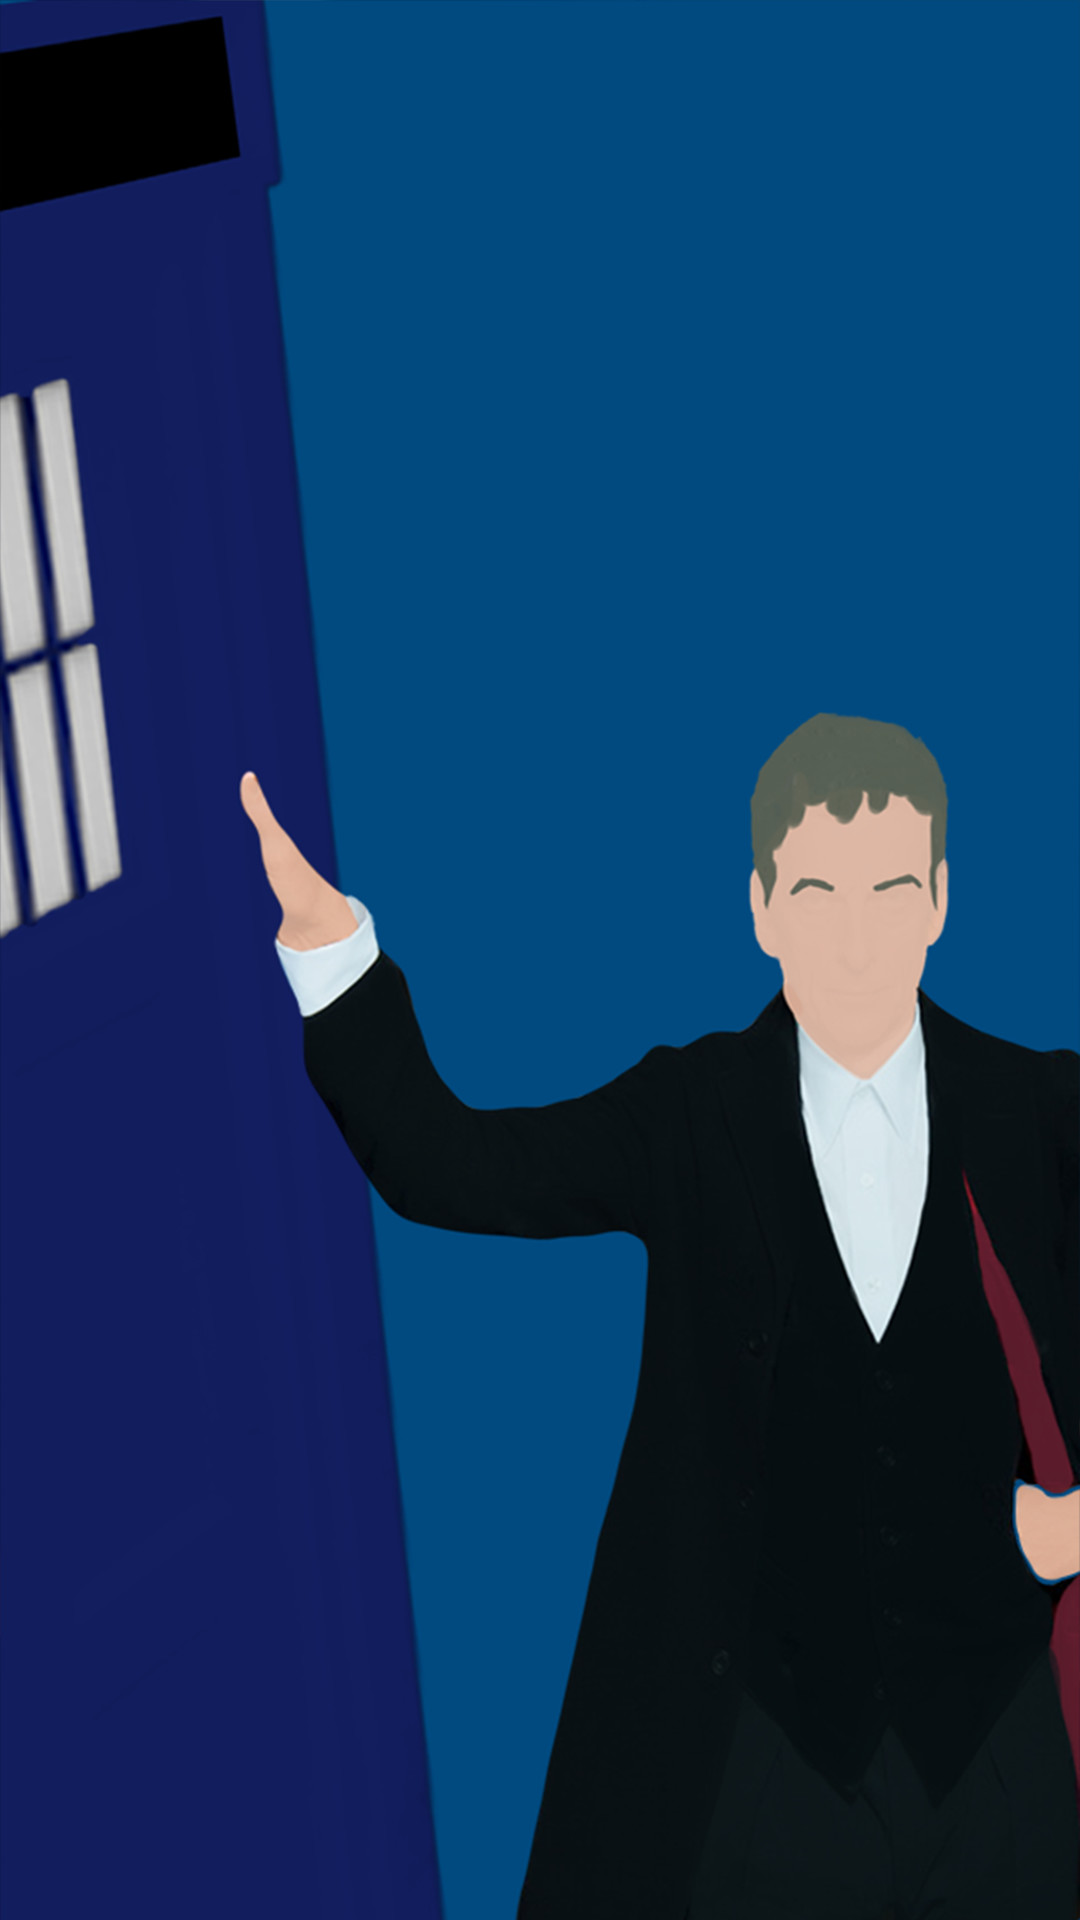 Doctor who iphone 6 wallpaper 68 images 1080x1920 these minimalistic season 8 doctor who wallpapers ybax start voltagebd Image collections